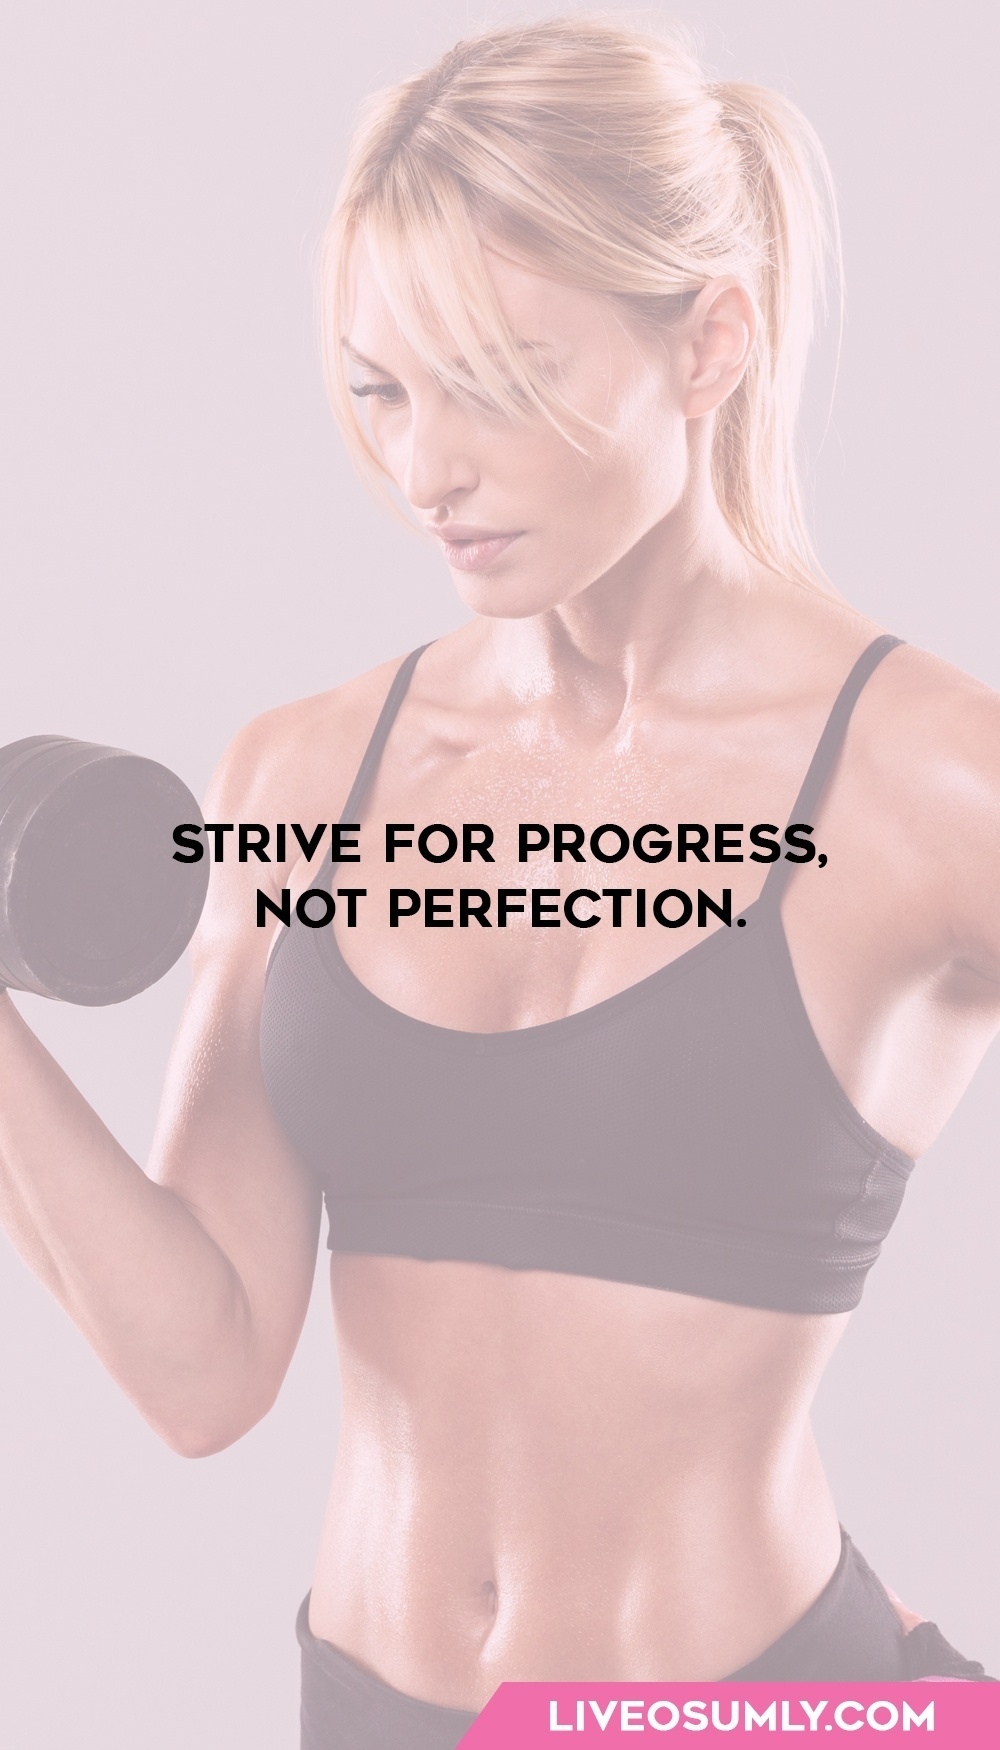 6. Motivational Quotes for Fitness